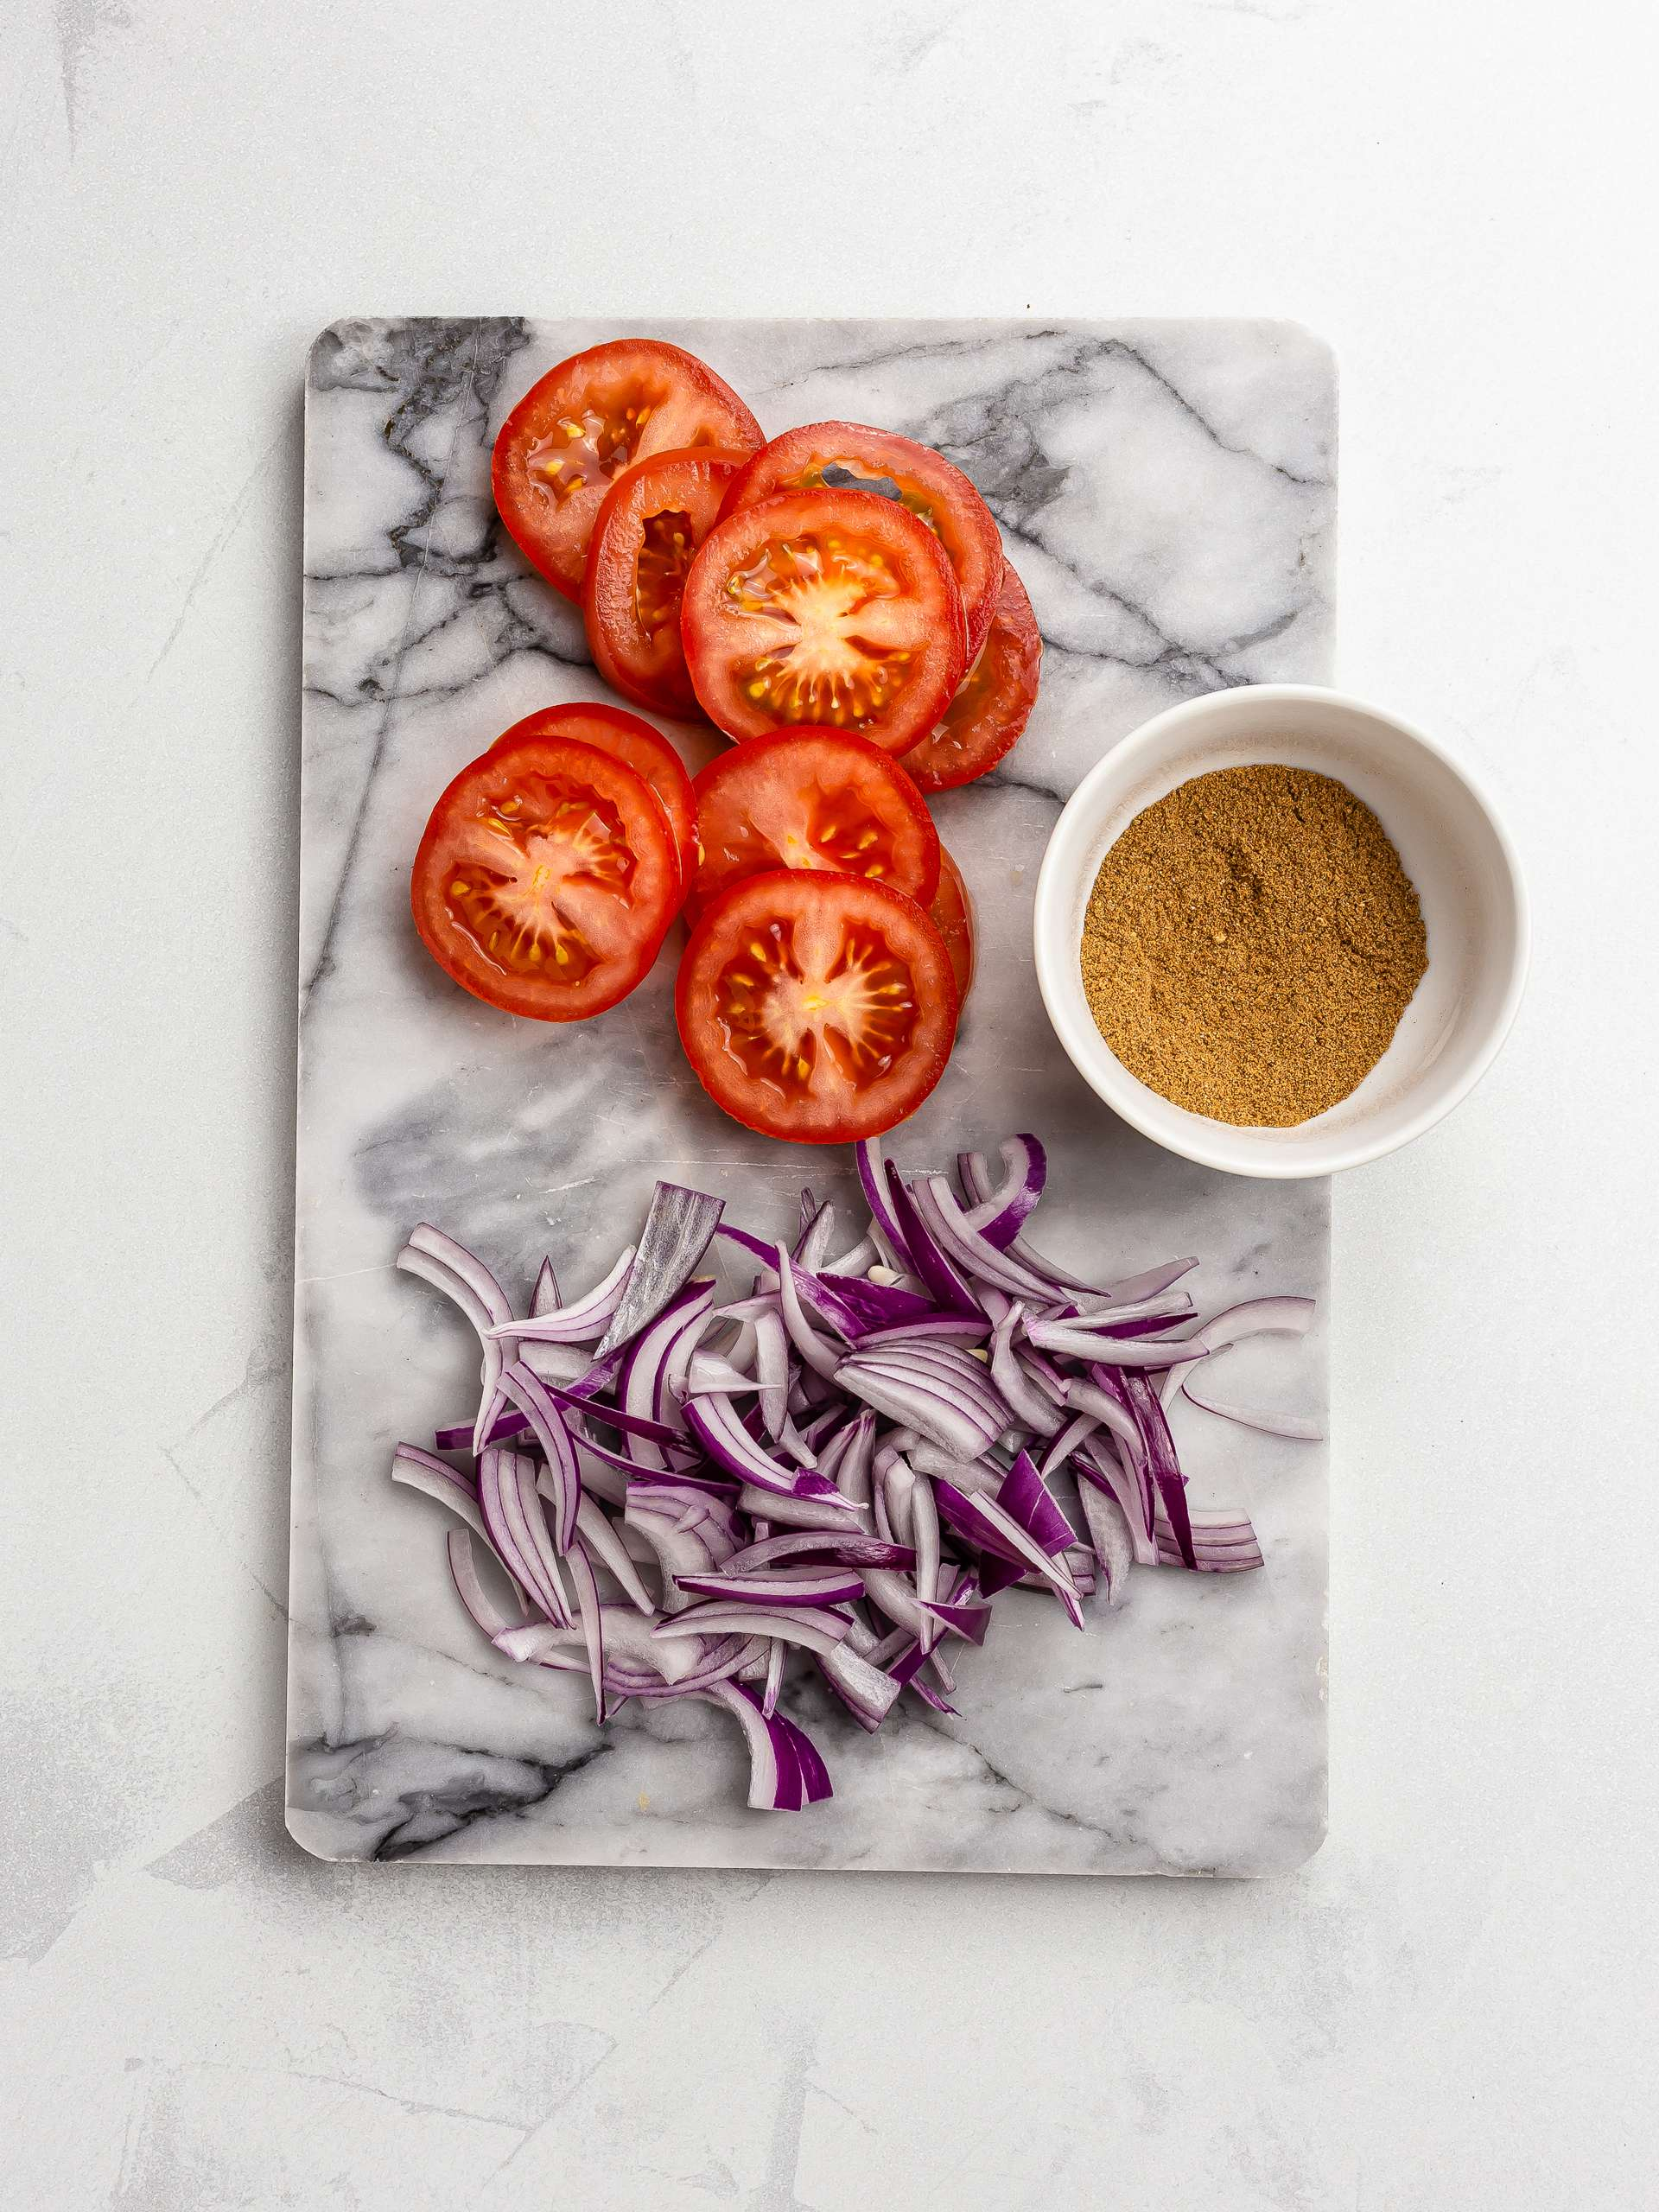 sliced onions and tomatoes for moussaka